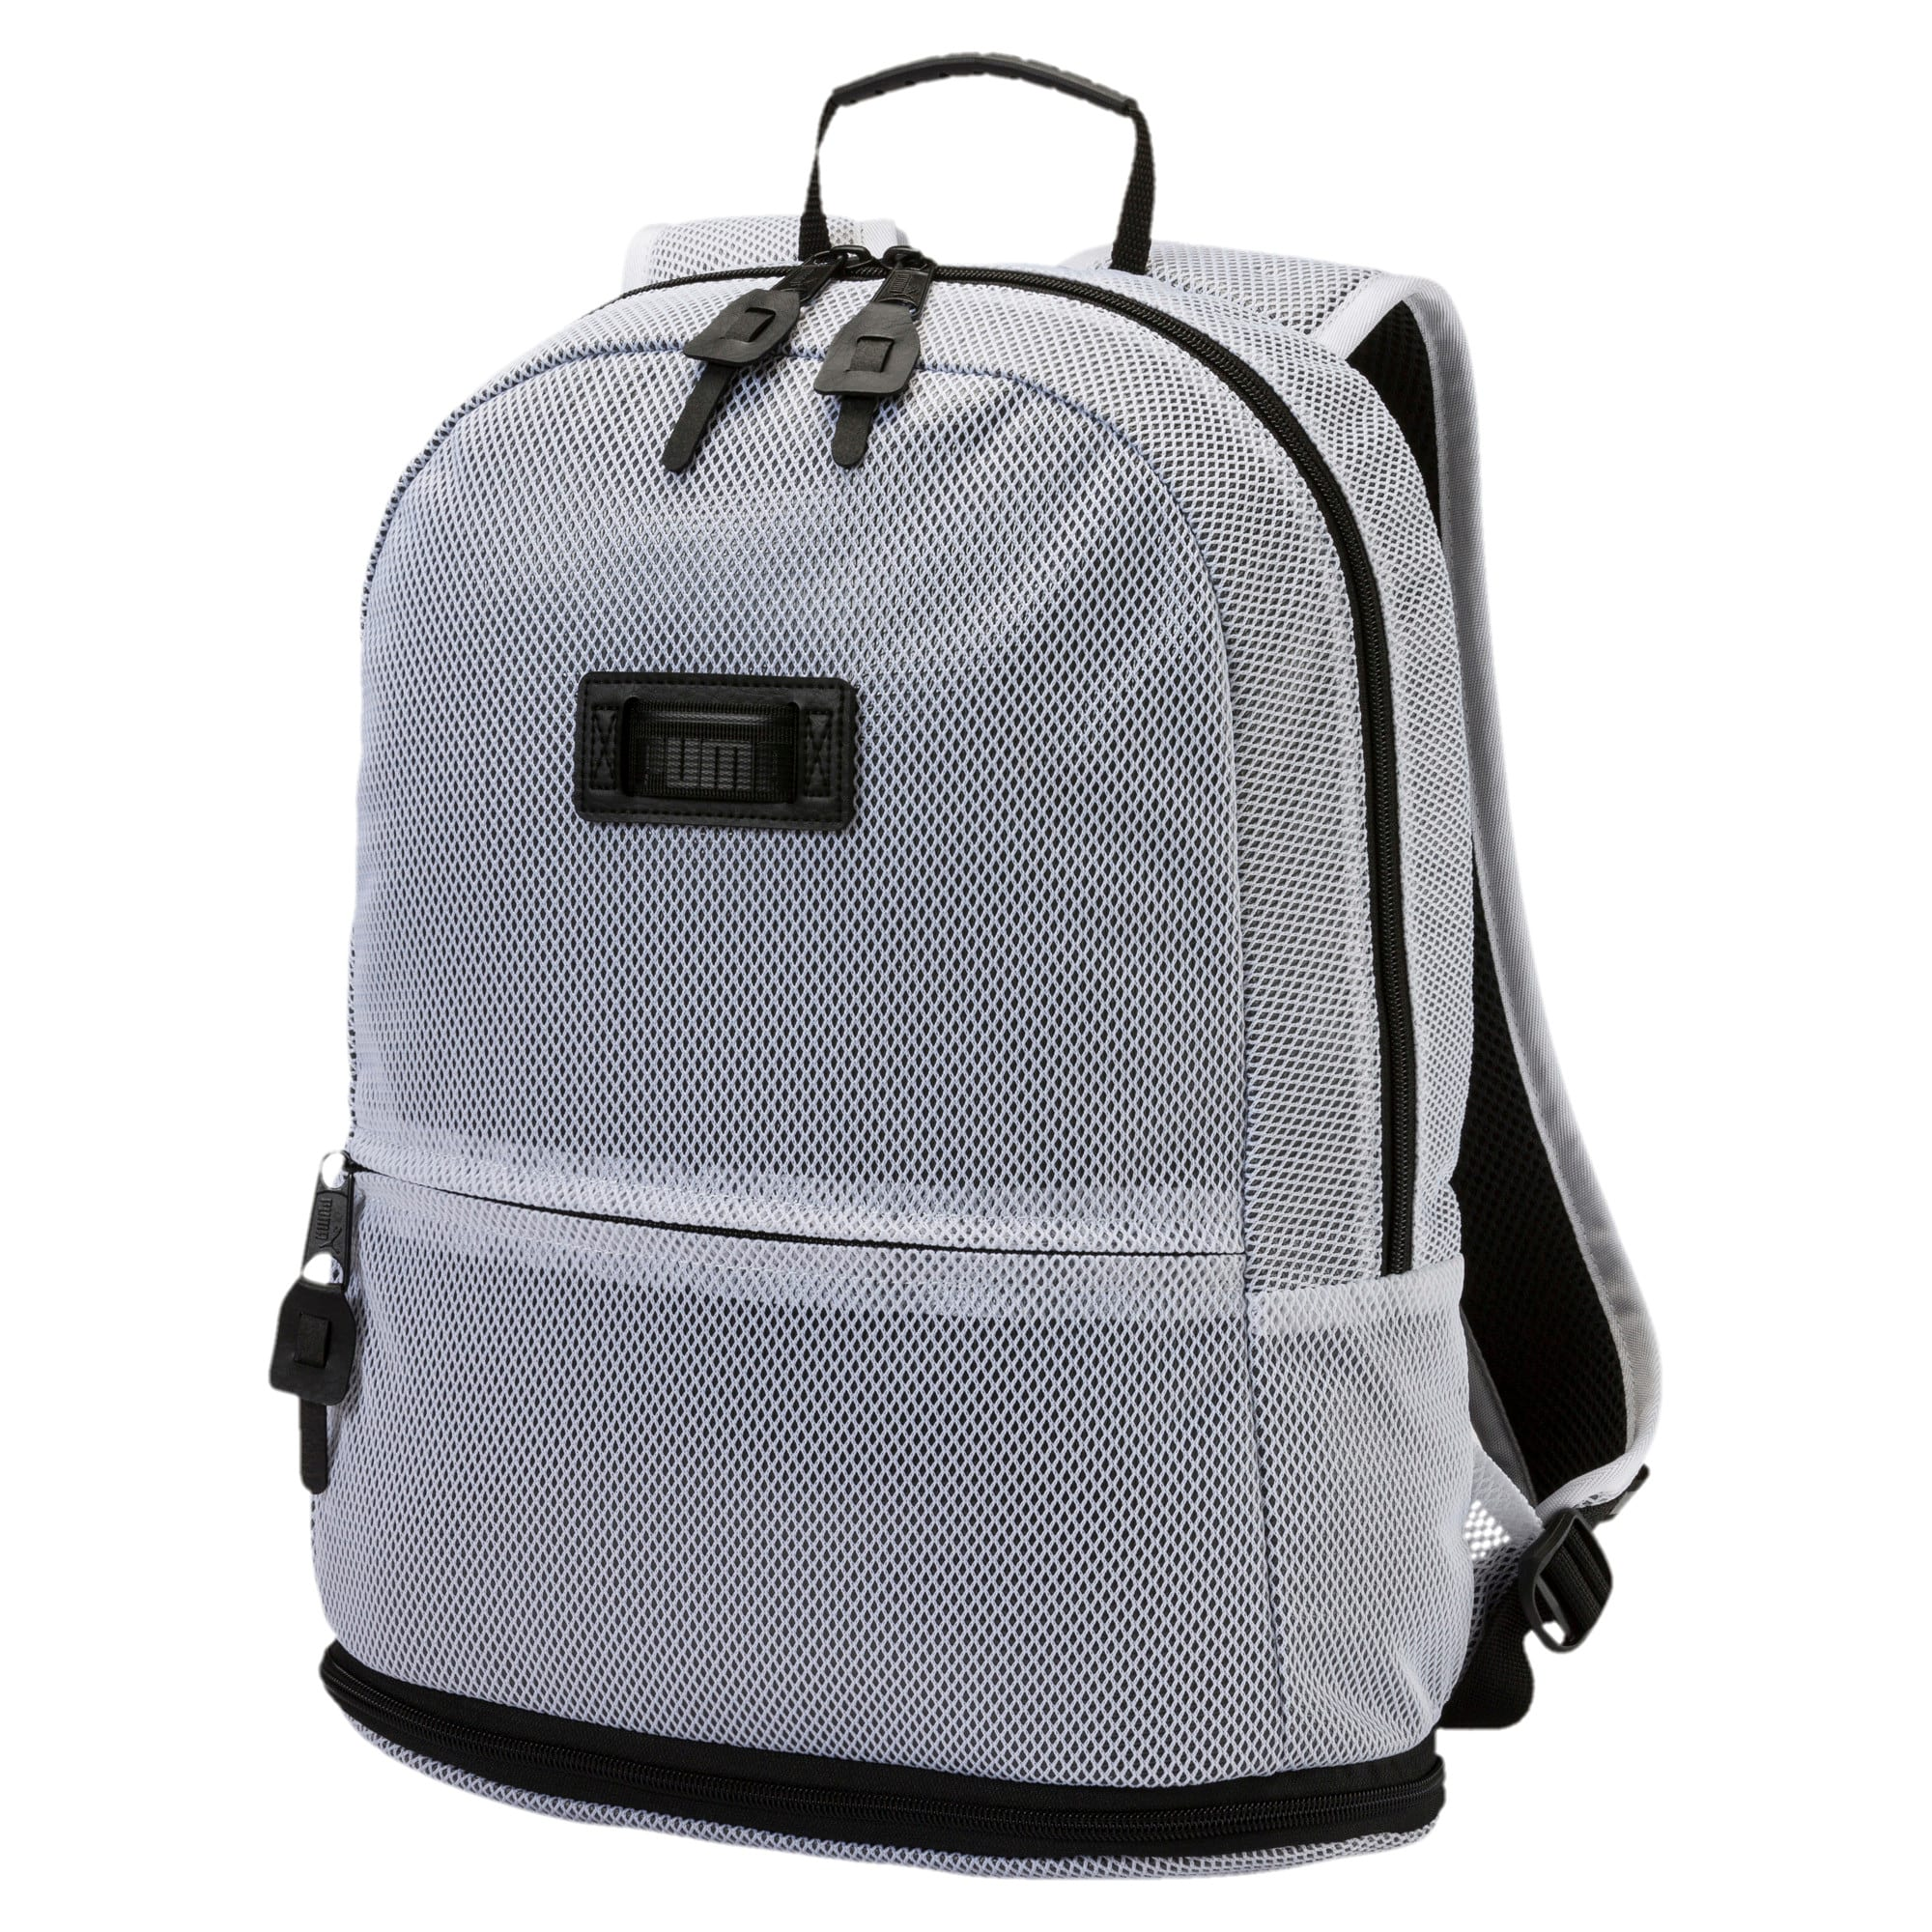 Thumbnail 1 of Pace Zip-out Backpack, Puma White, medium-IND